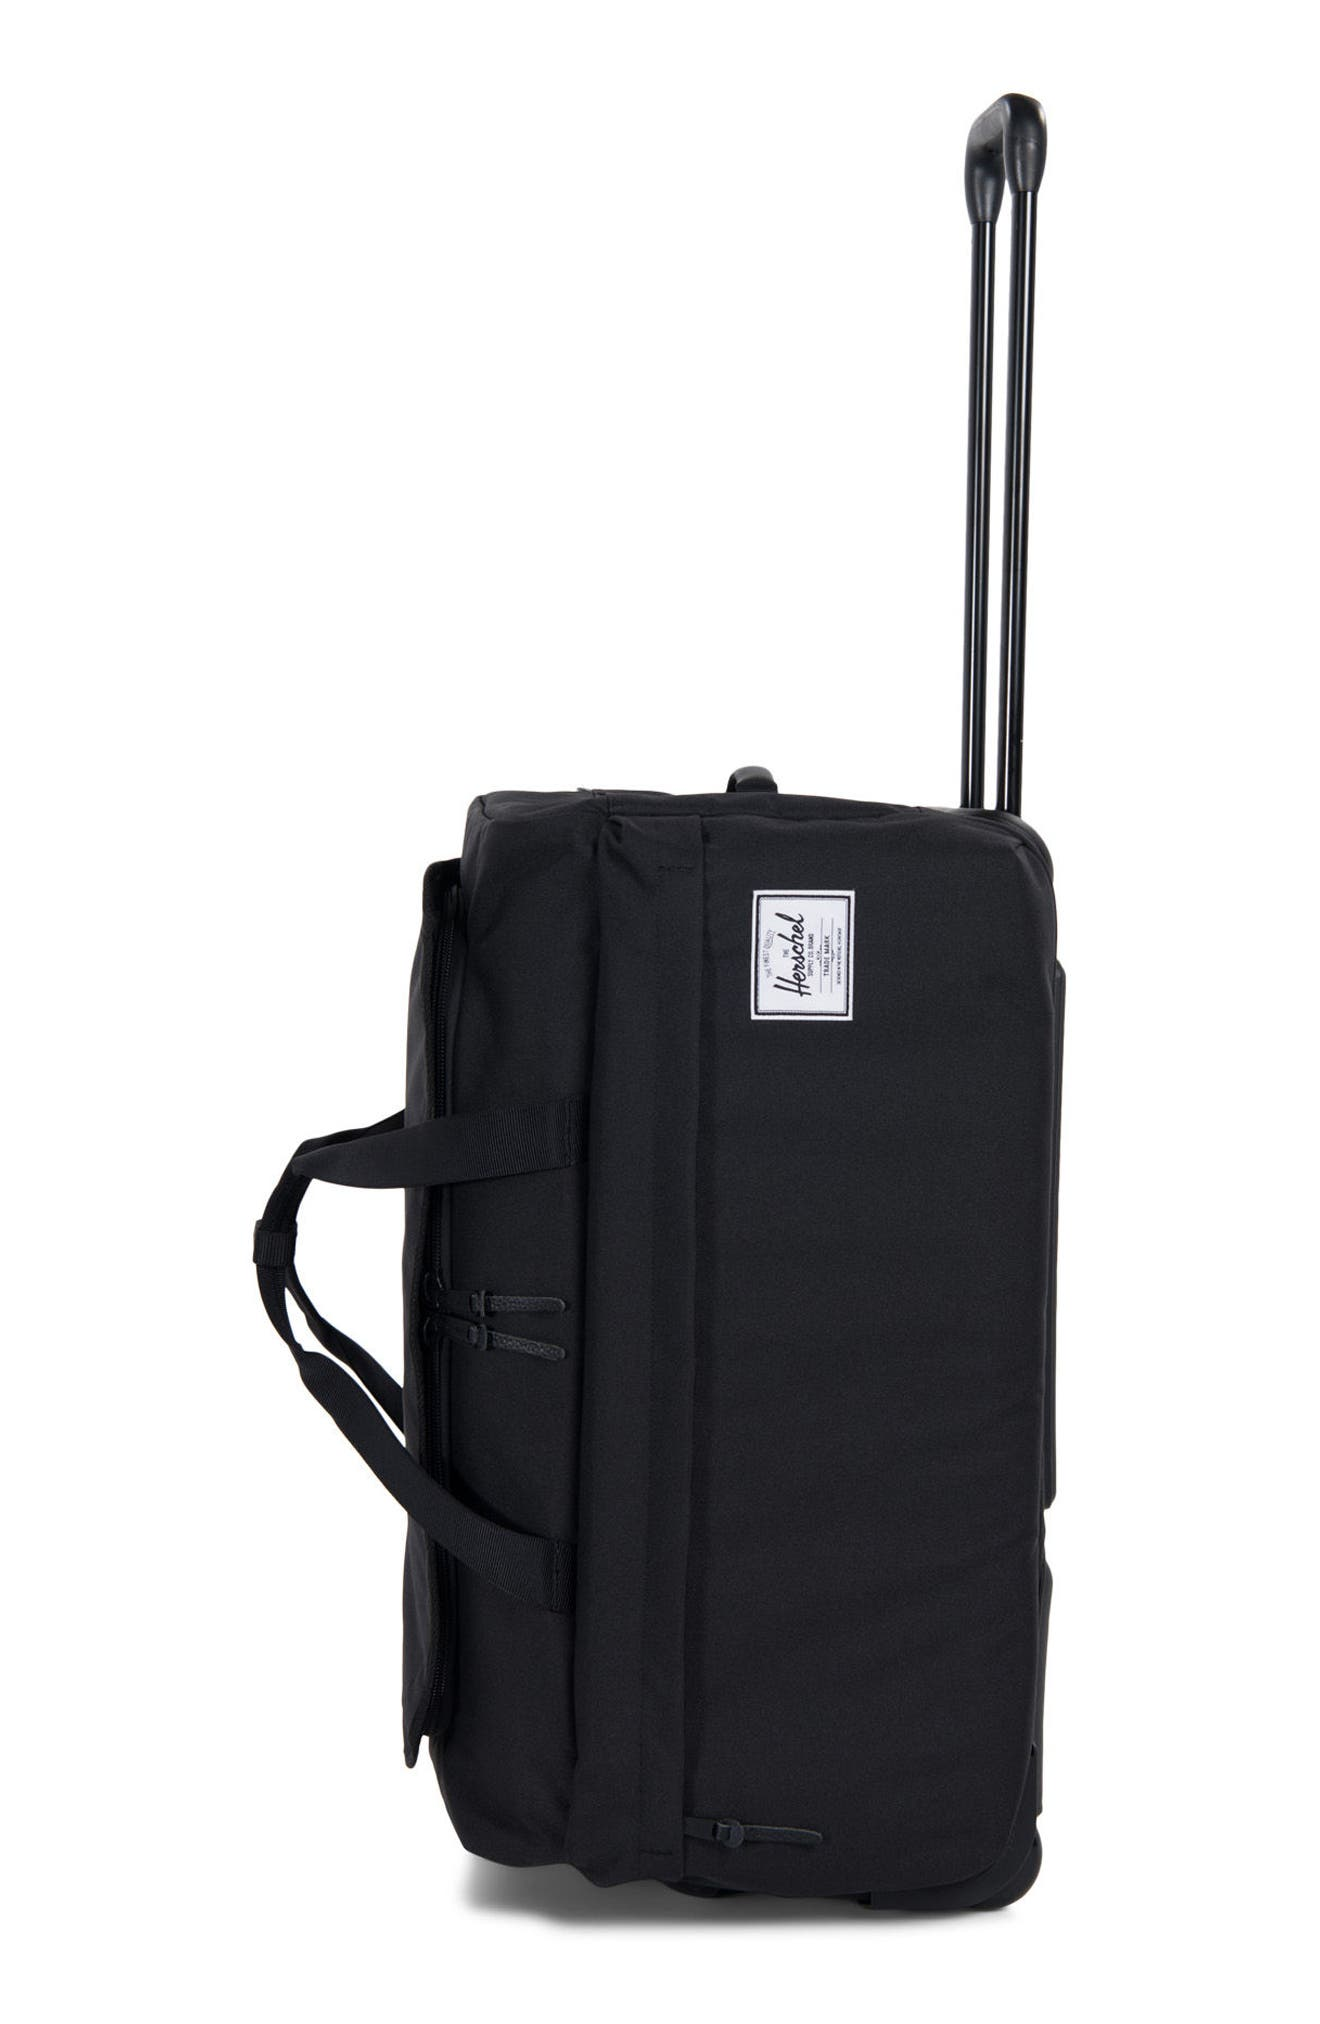 24-Inch Wheelie Rolling Carry-On,                             Alternate thumbnail 2, color,                             001